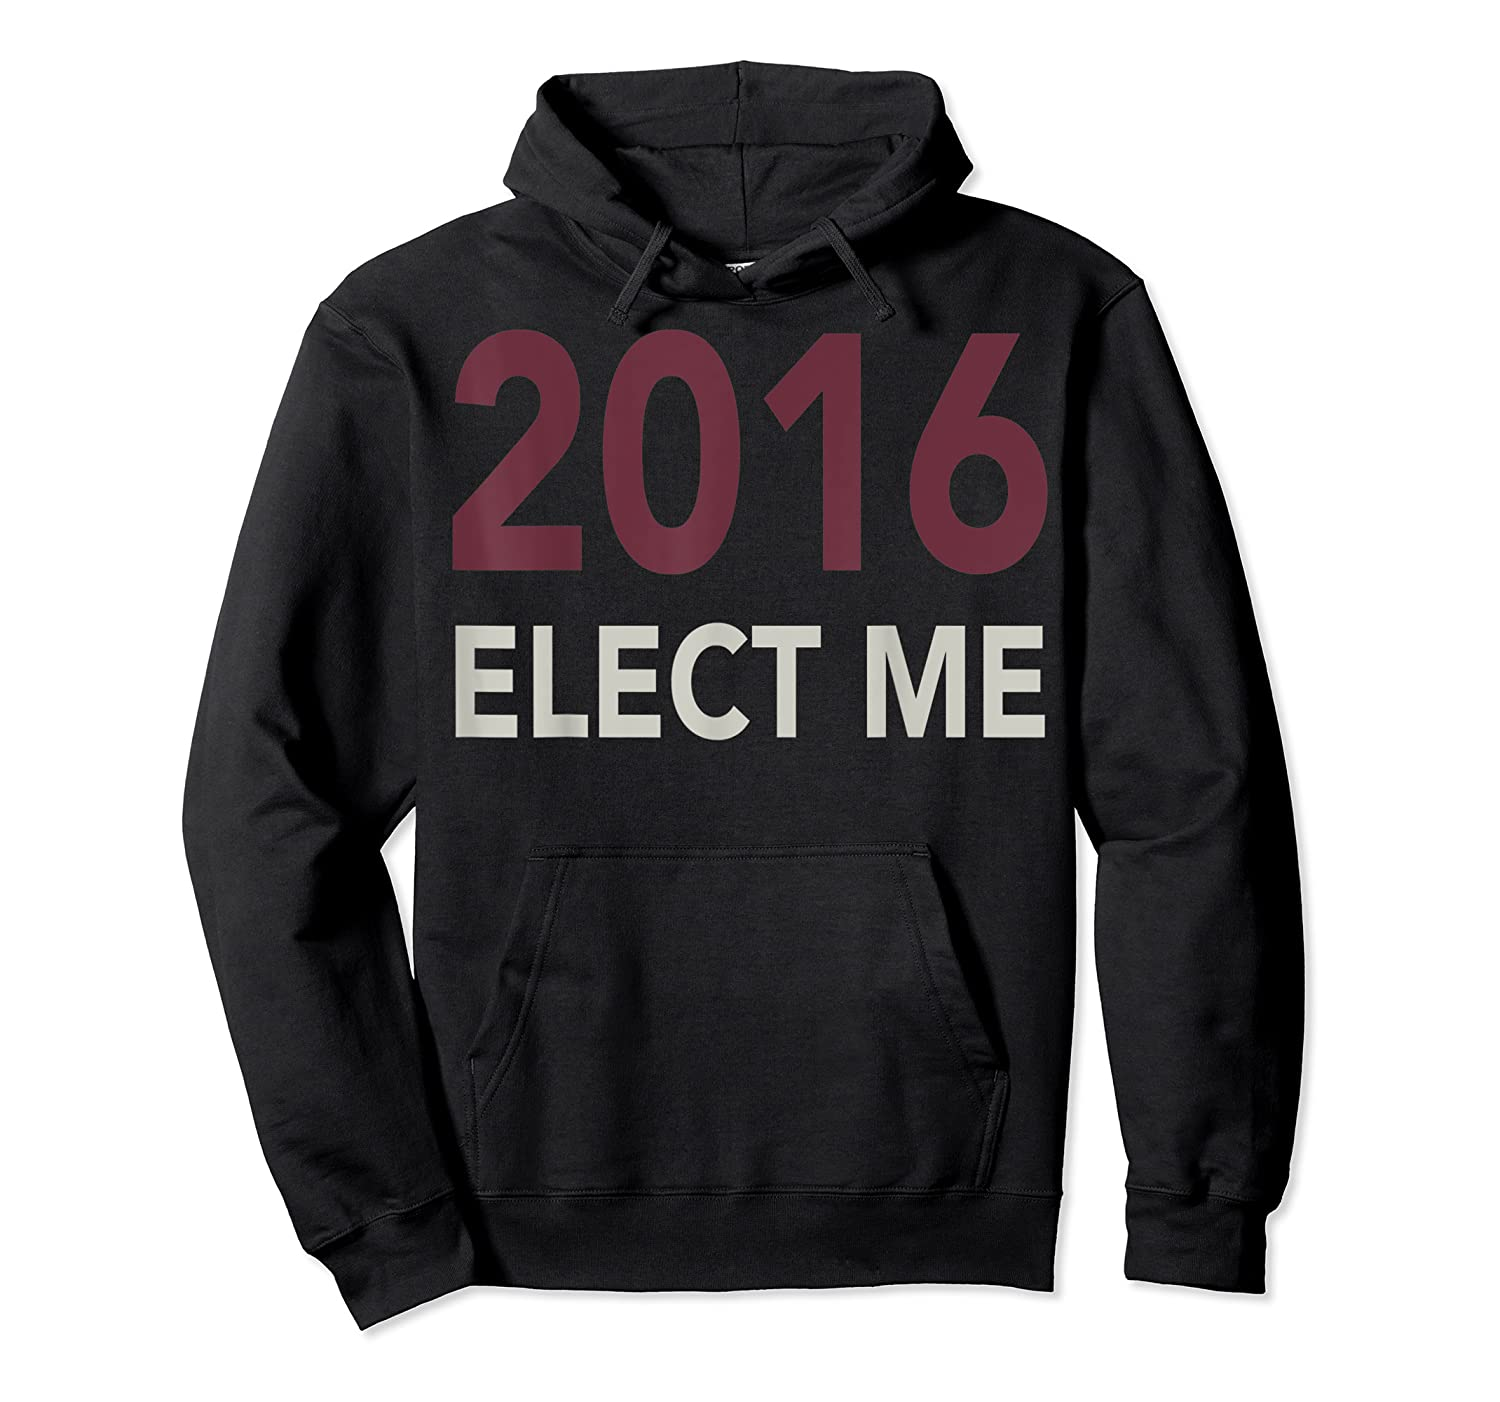 2016 Elect Me Voting Election Day Graphic T Shirt Unisex Pullover Hoodie